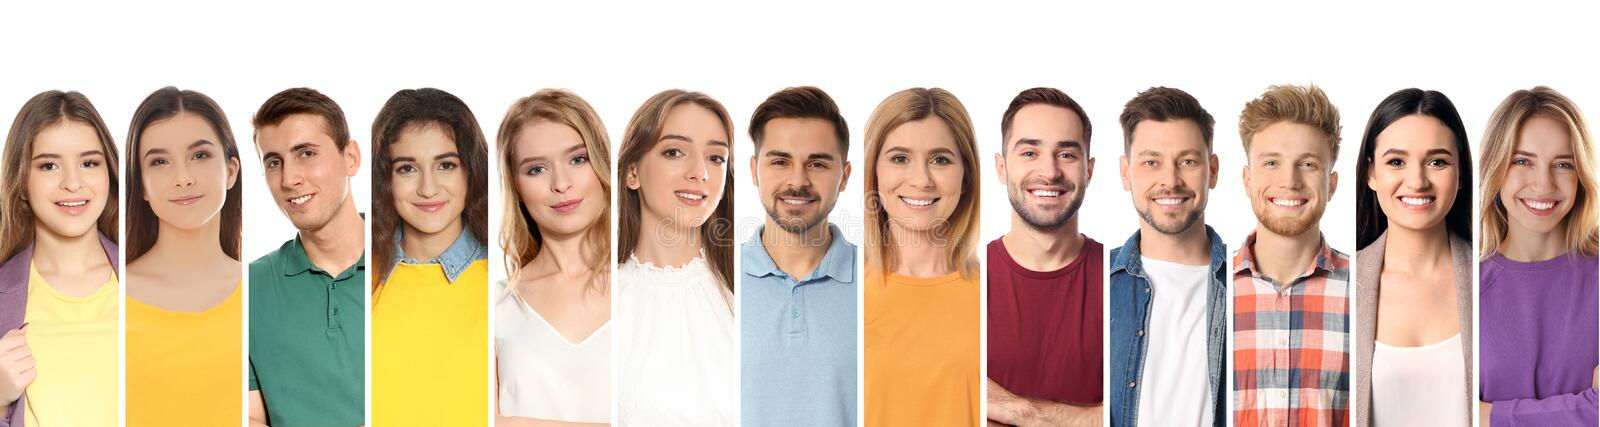 Collage of smiling people on white background royalty free stock image